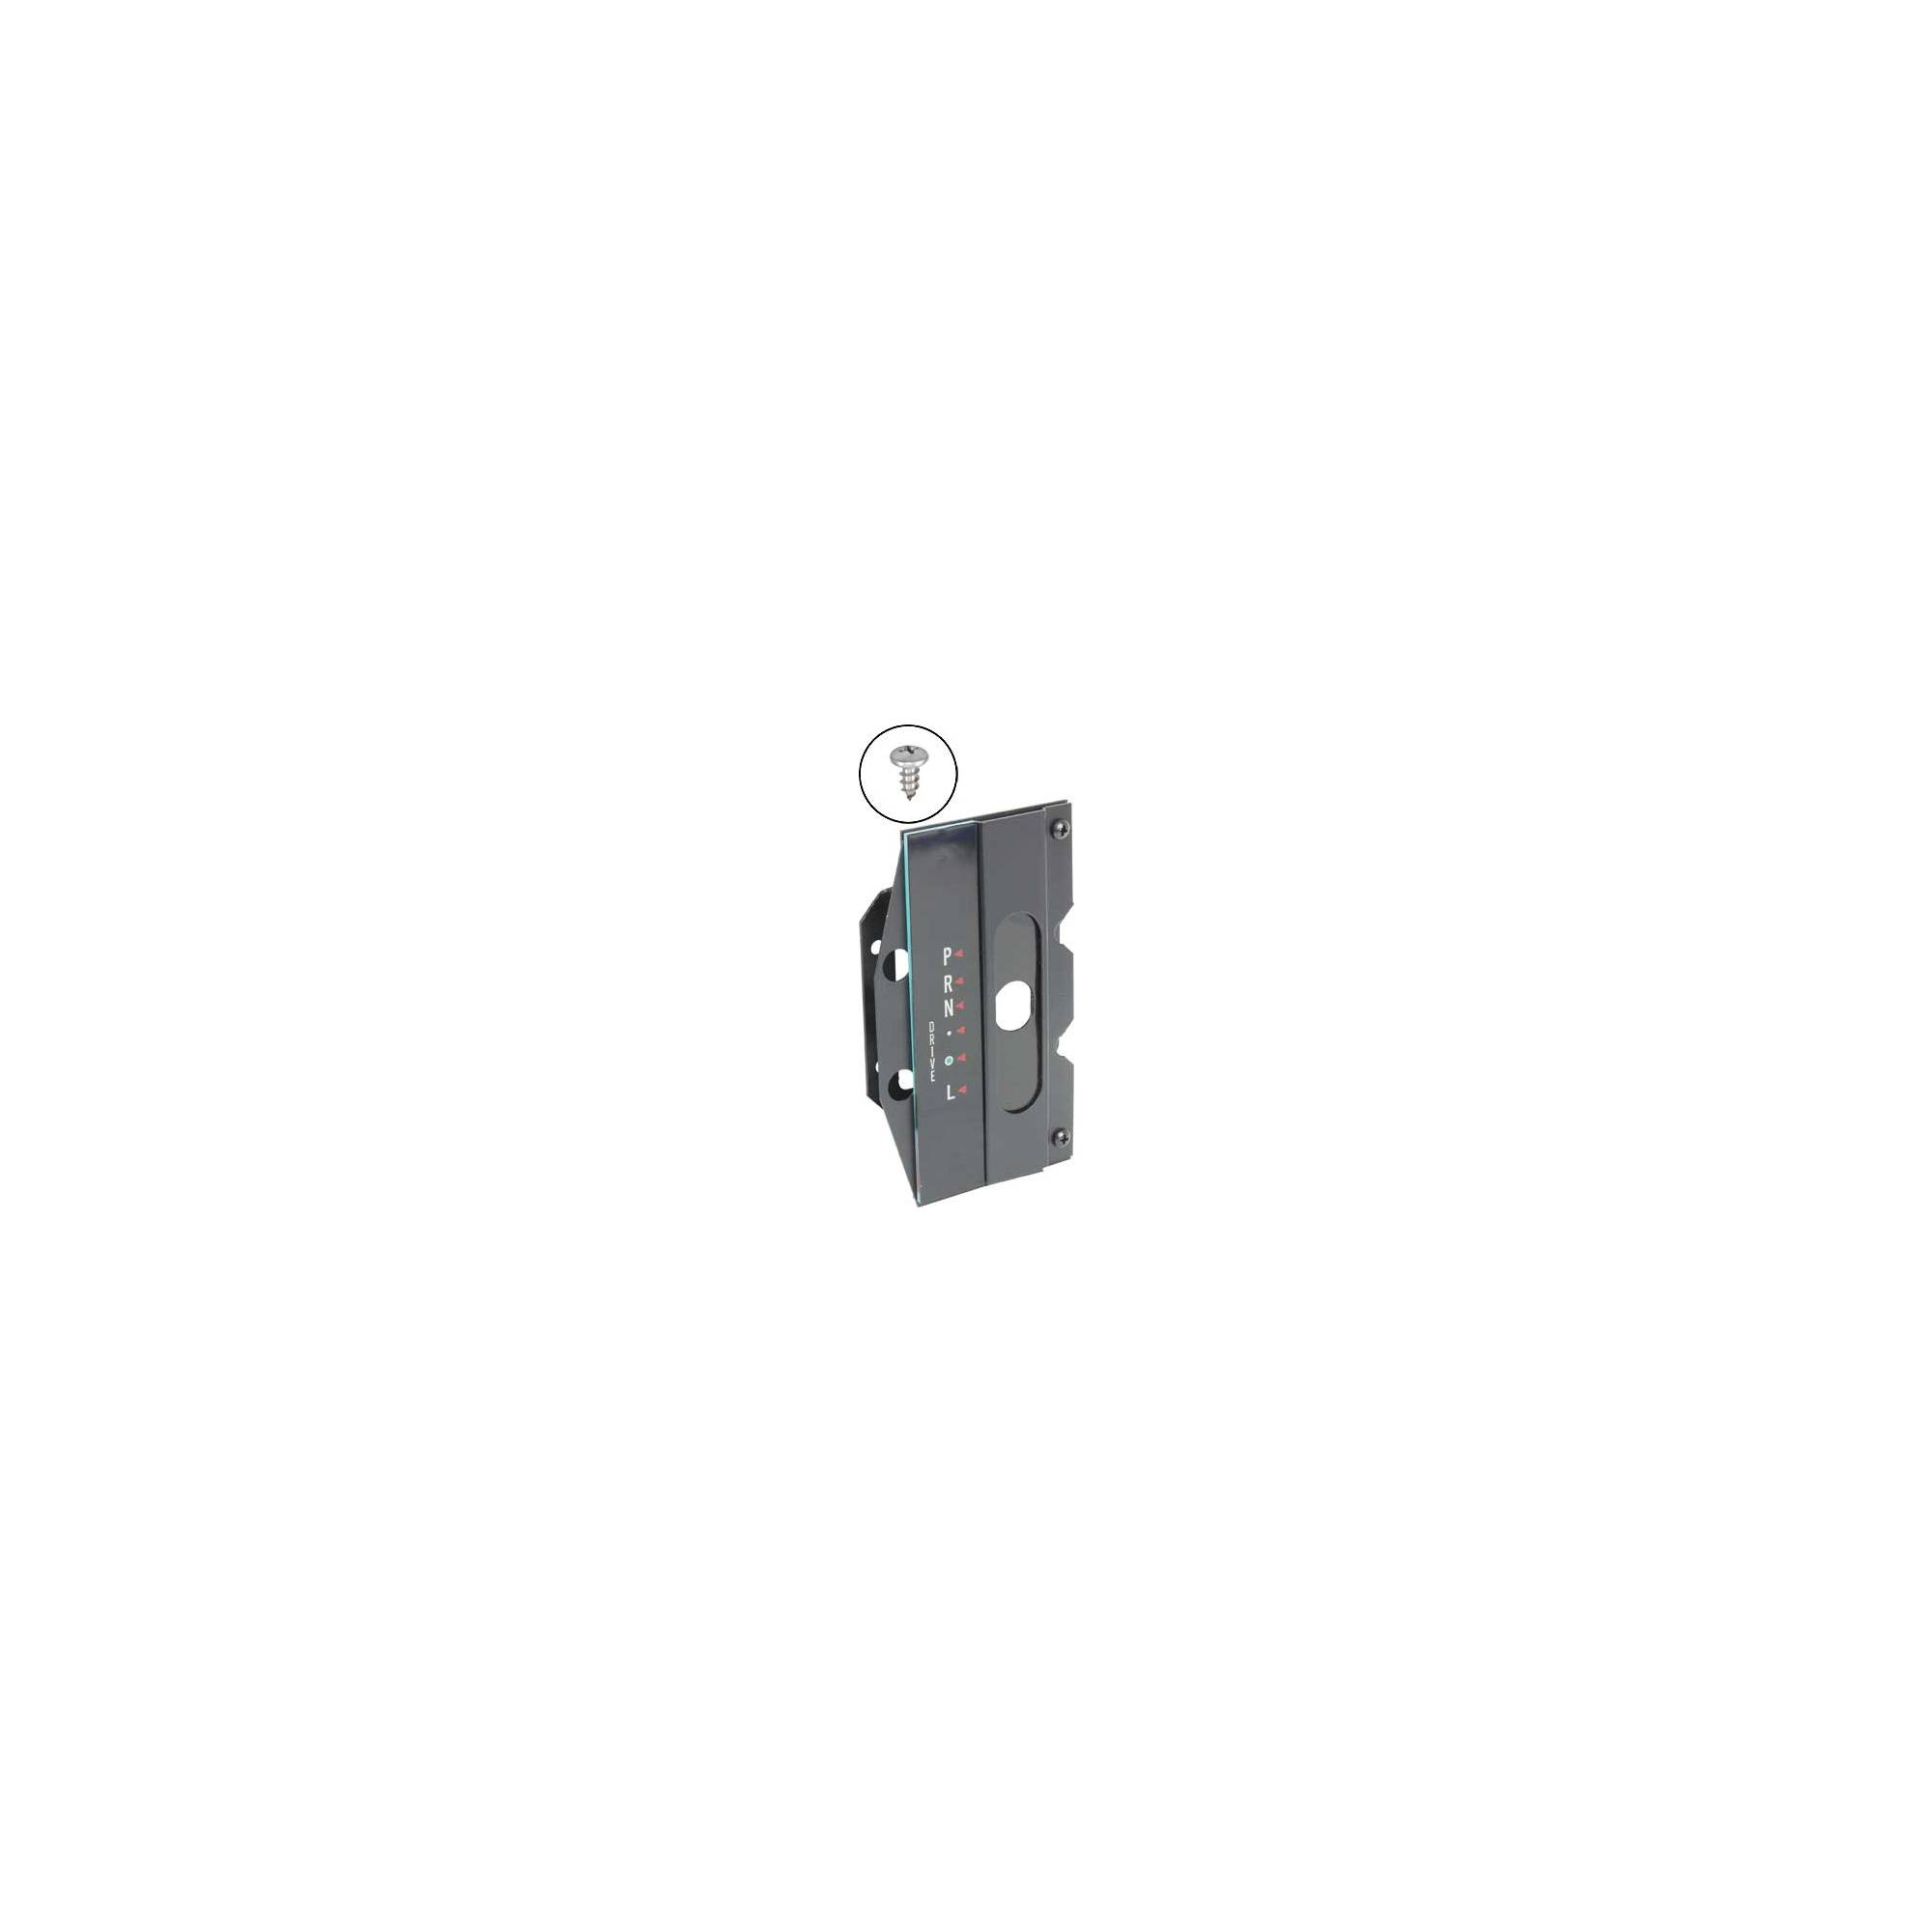 MACs Auto Parts 44-38986 Mustang Automatic Transmission Console Shift Selector Dial and Slide